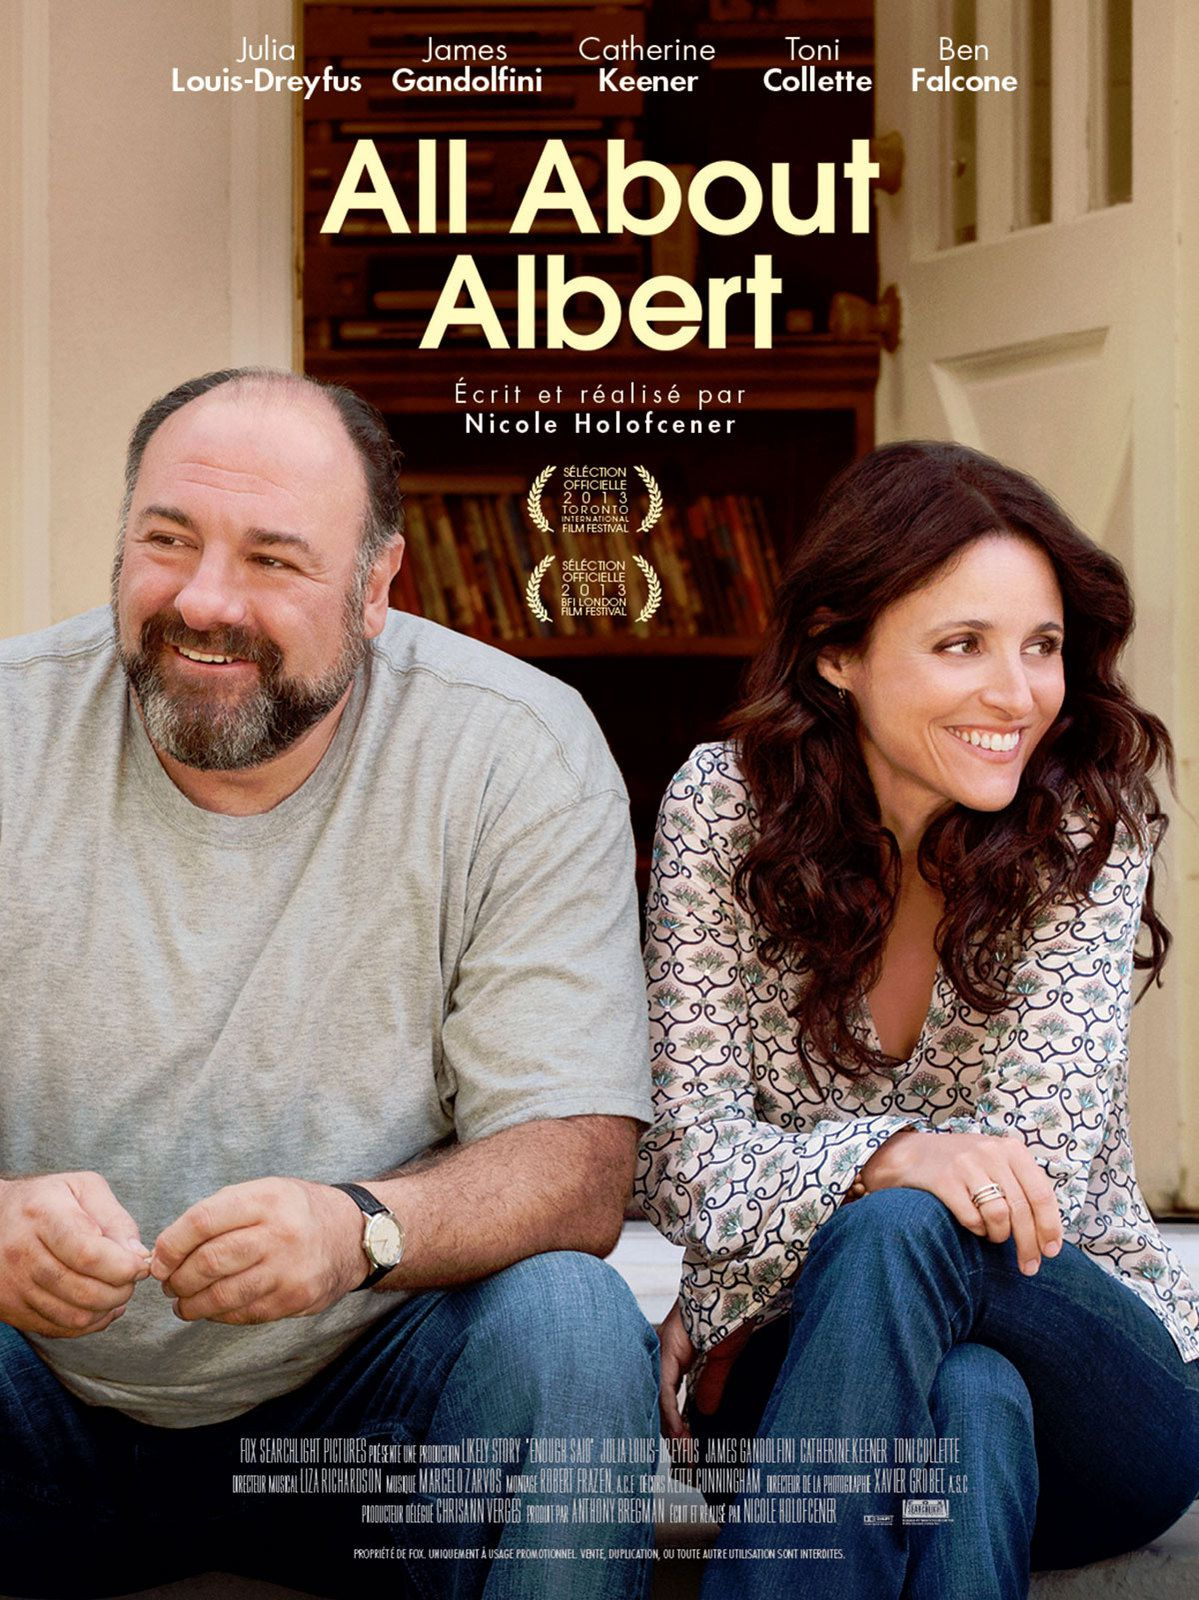 ALL ABOUT ALBERT / CINEMA / NICOLE HOLOFCENER / 2013